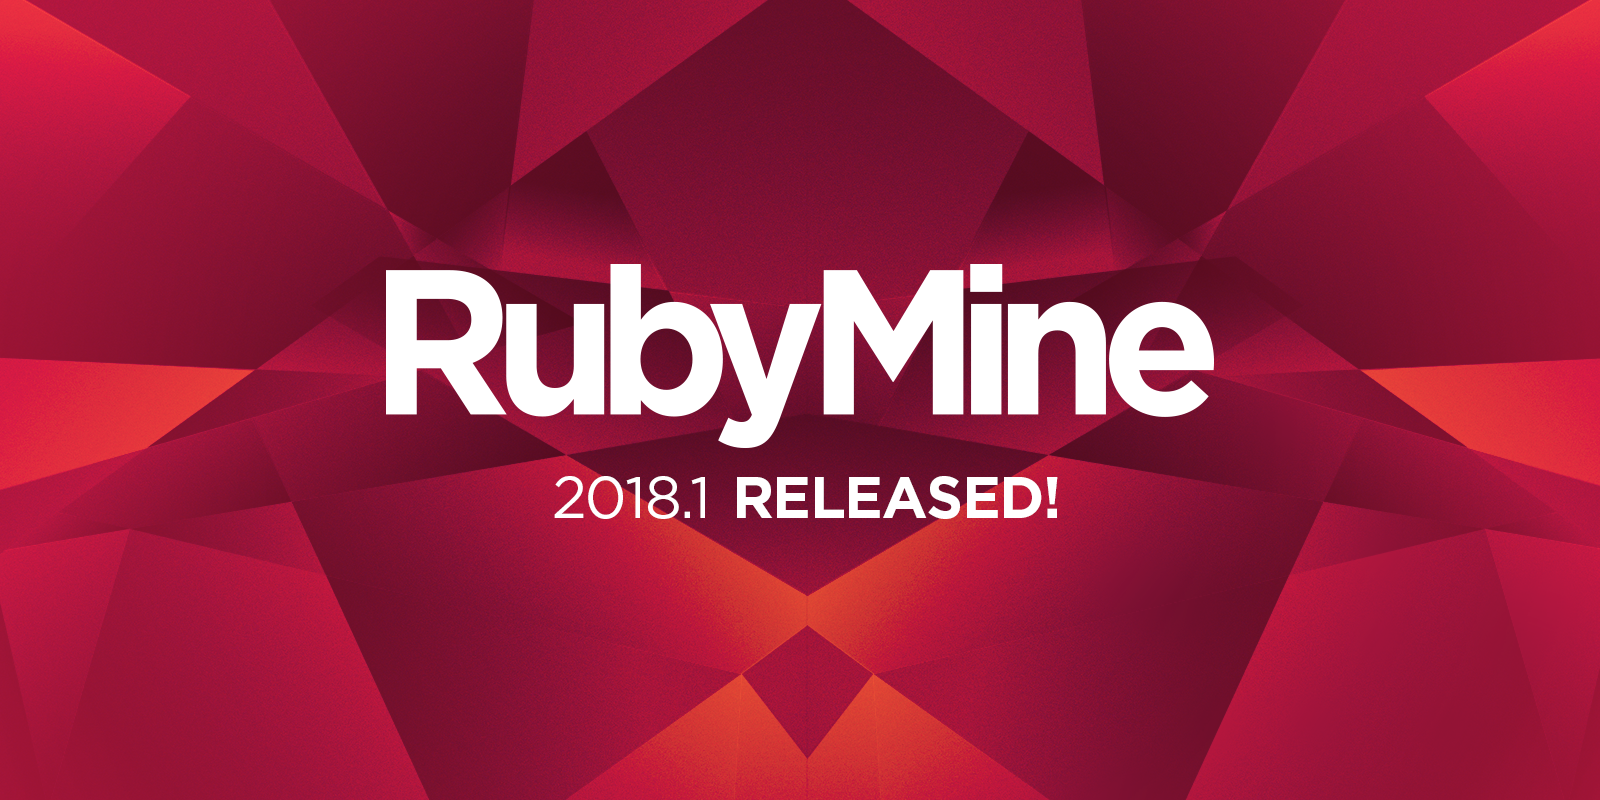 RubyMine_2018.1_released